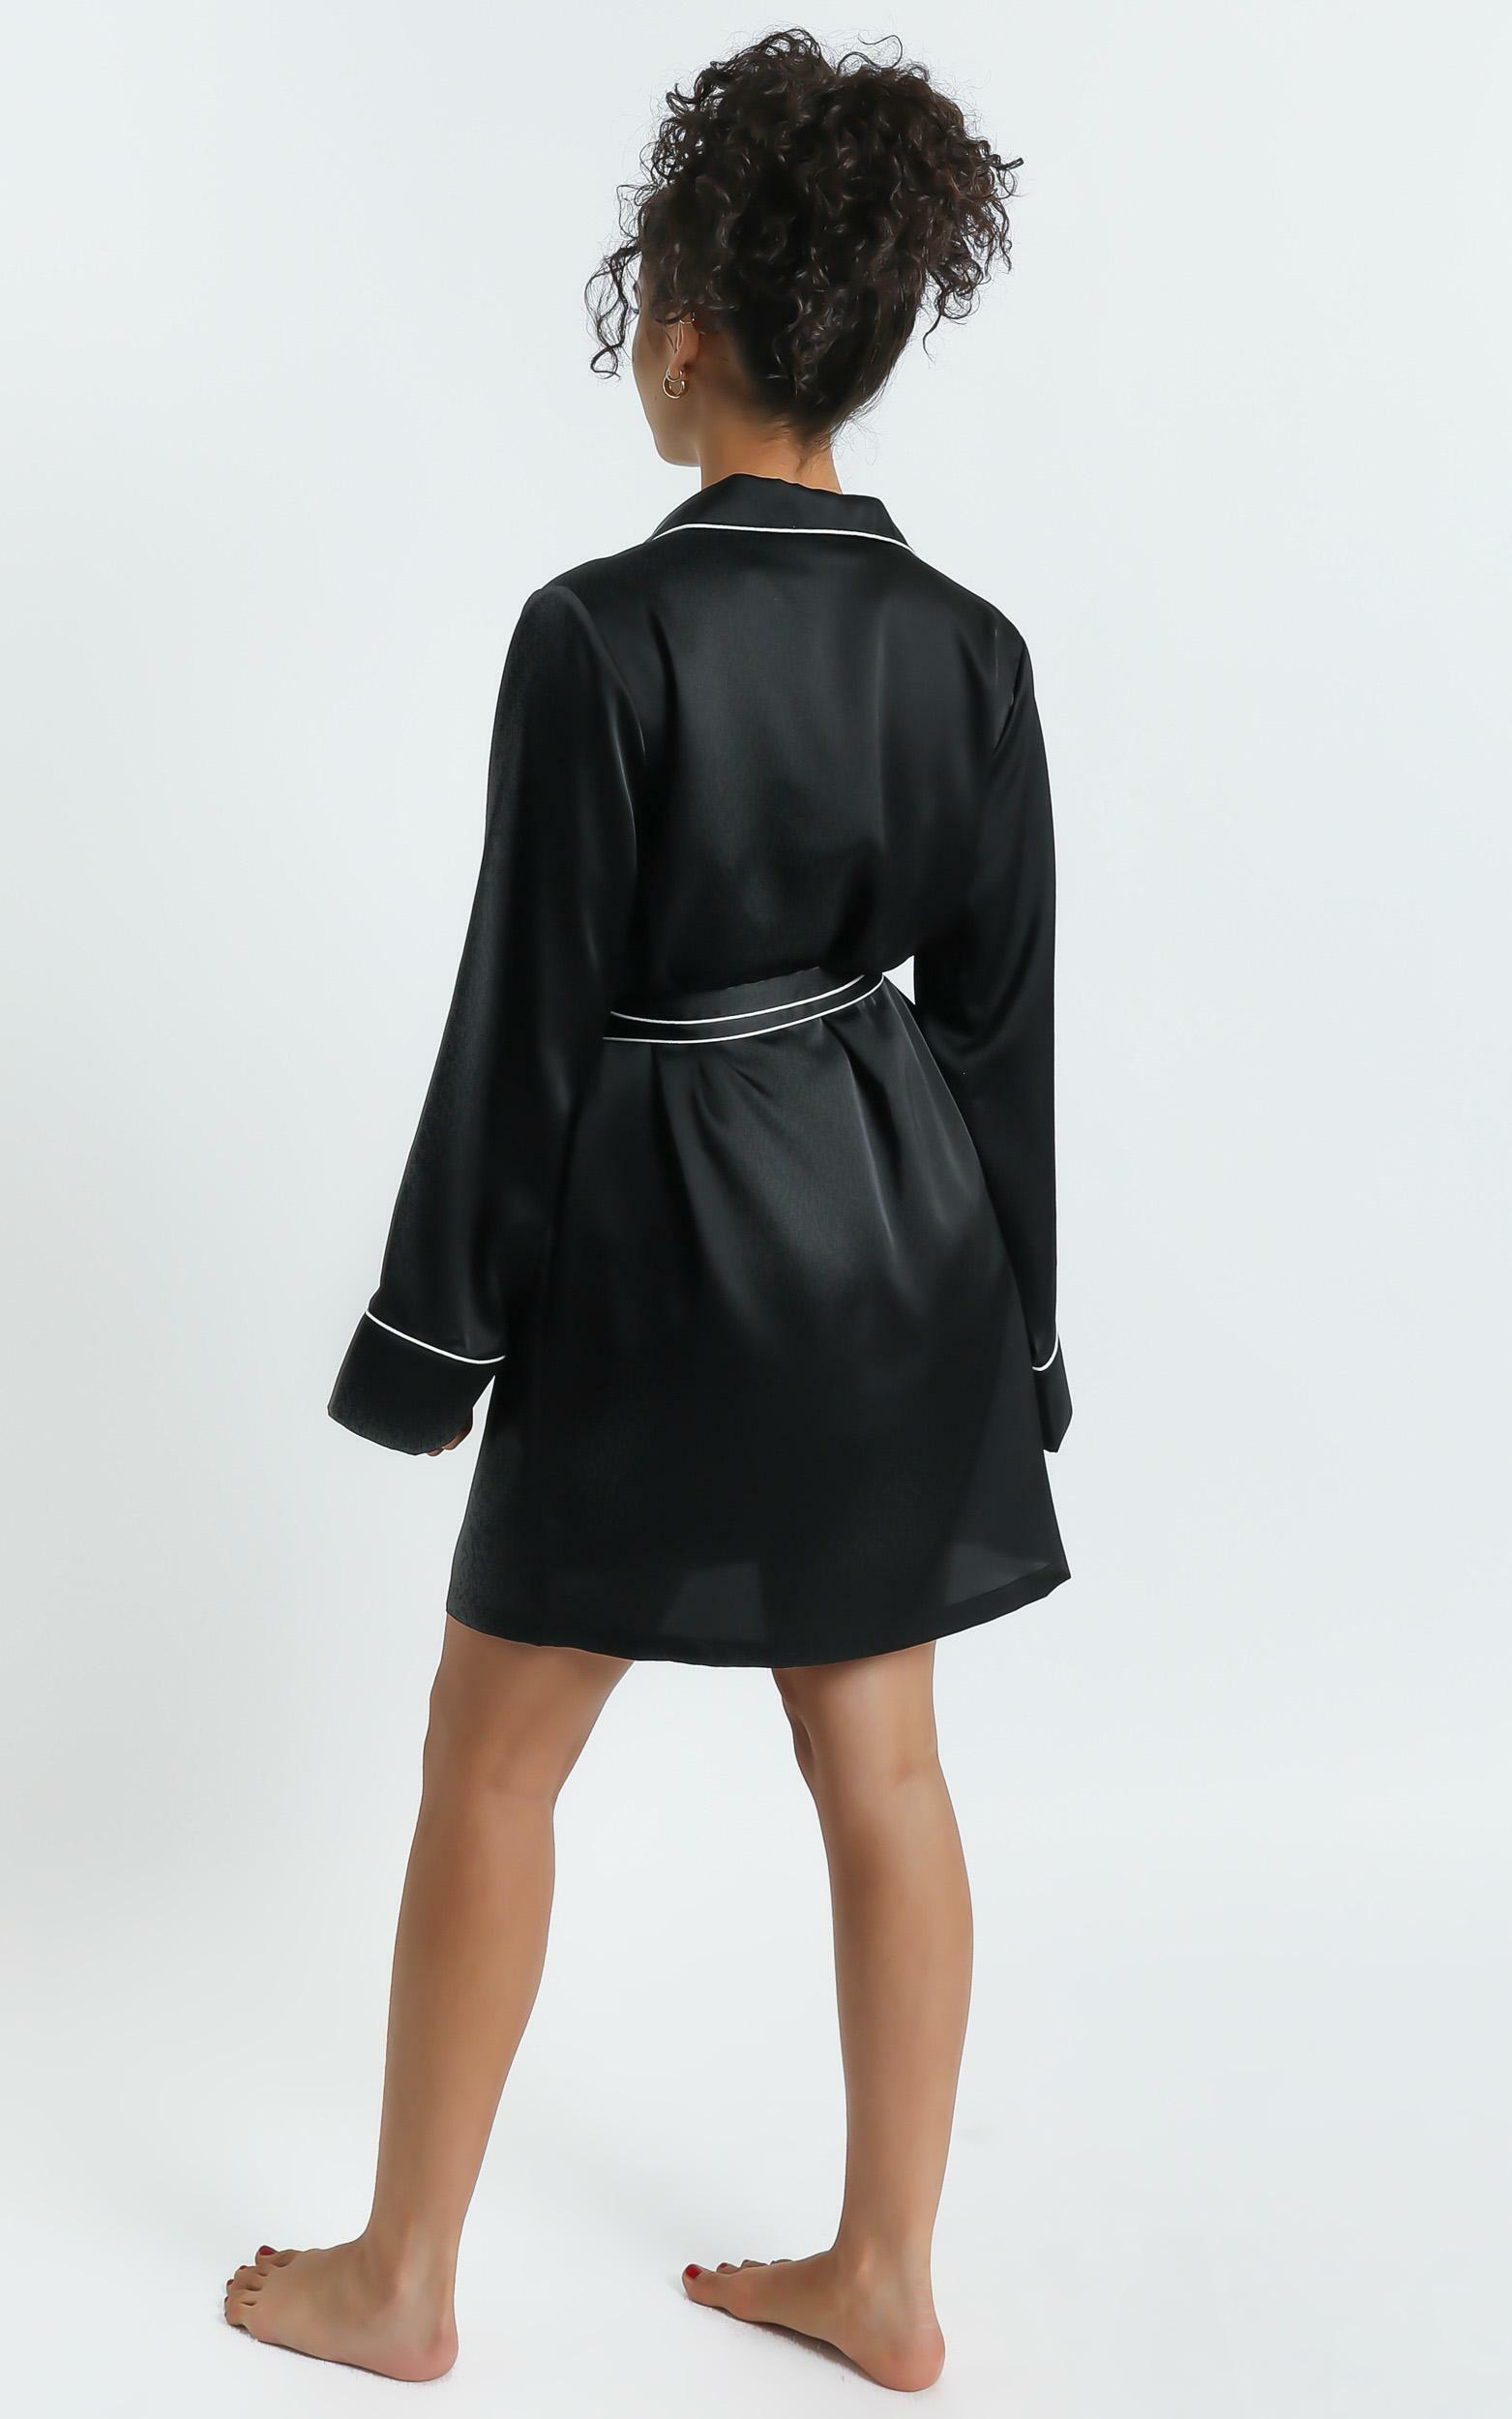 Nap Time Robe in Black Satin - 4 (XXS), BLK1, hi-res image number null